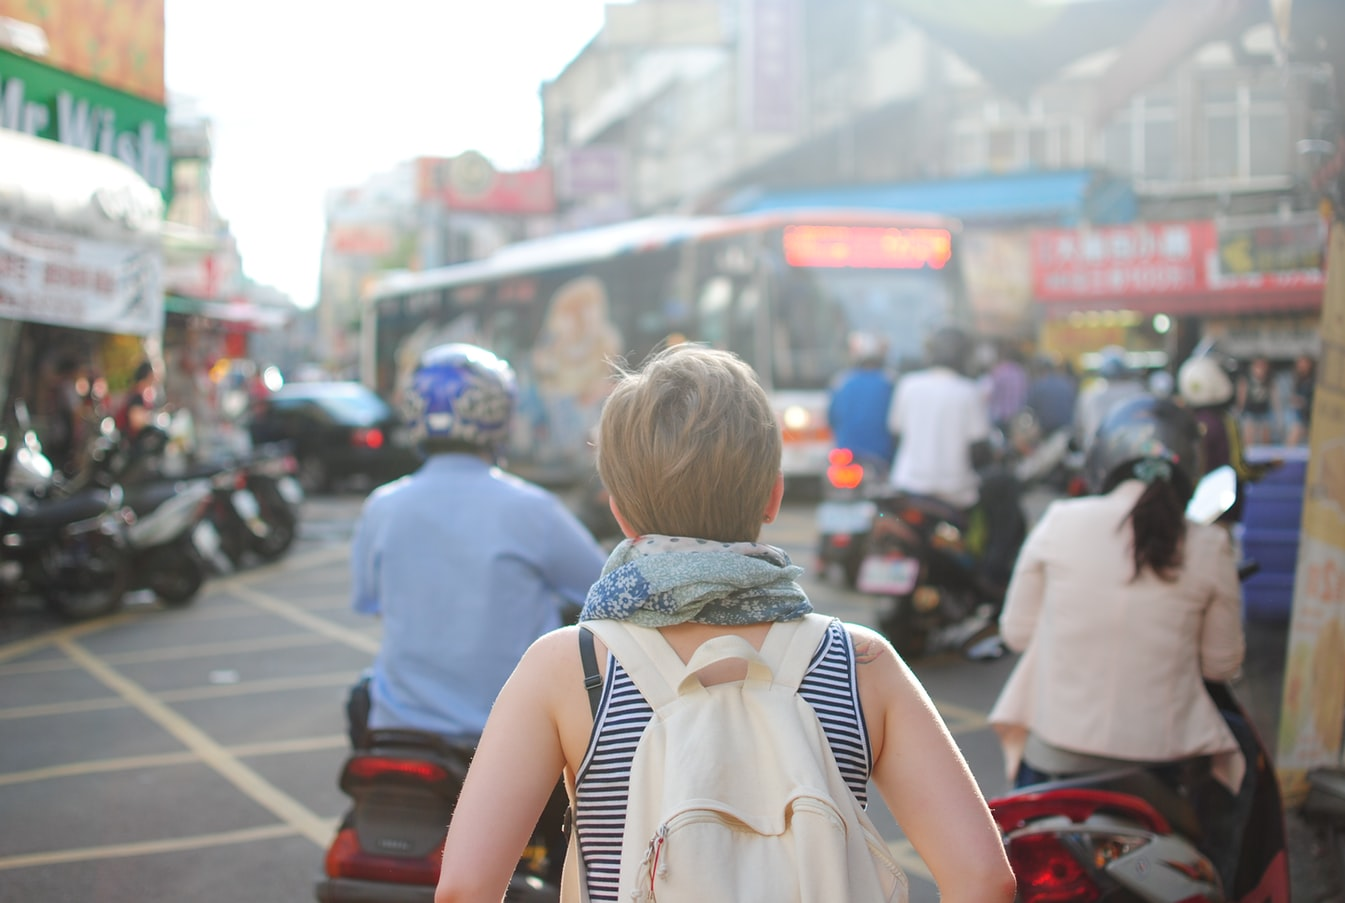 Woman backpacking in a busy city